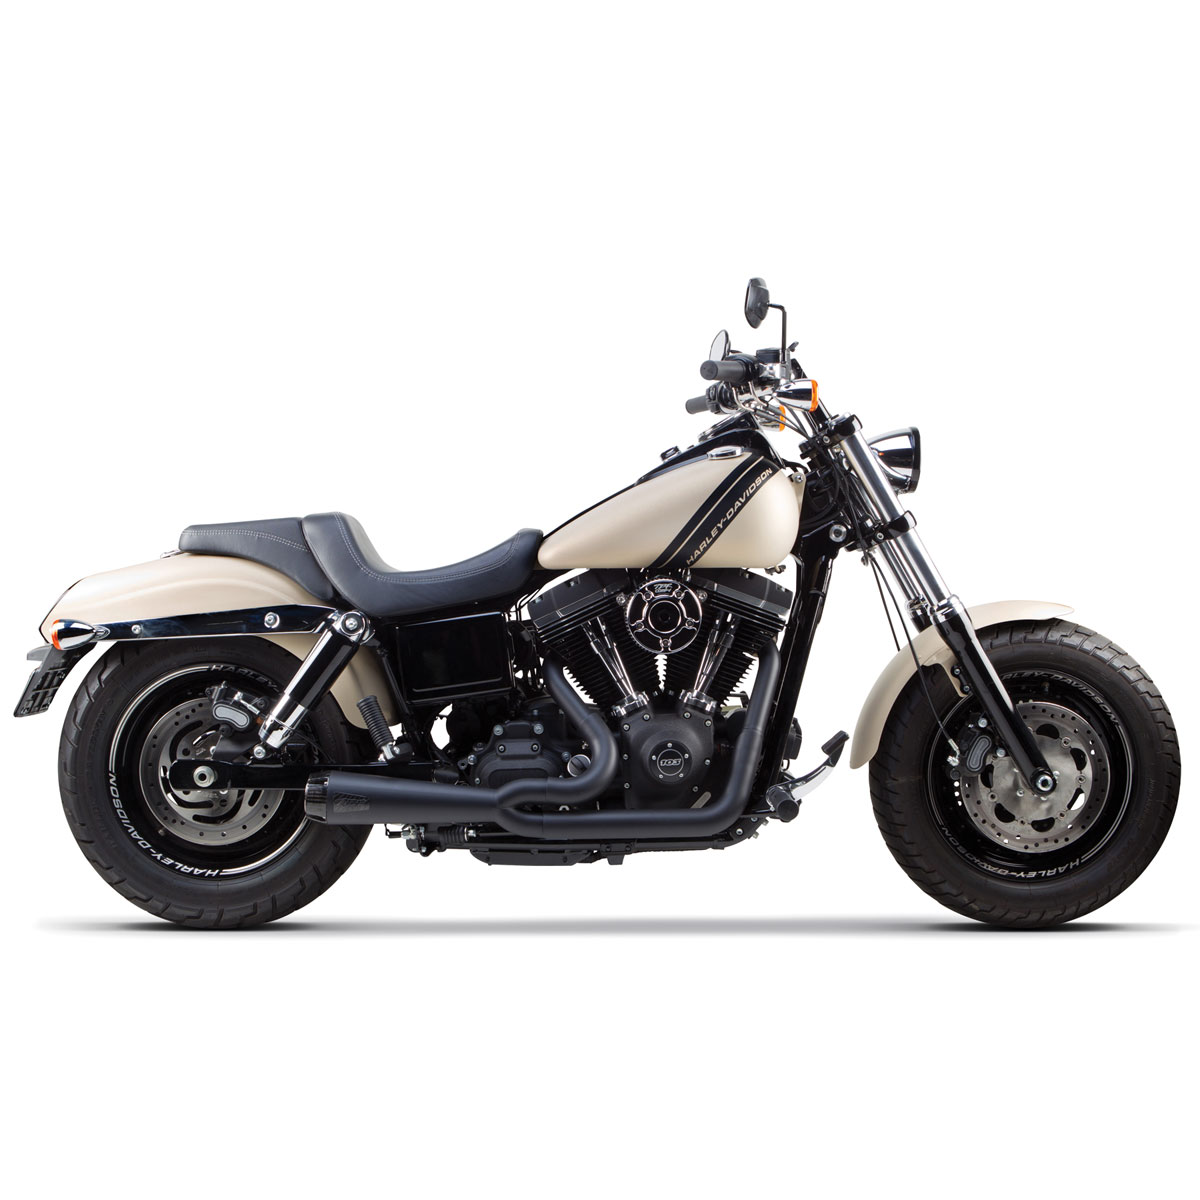 Two Brothers Racing Comp-S 2-1 Exhaust Ceramic Black Stainless Steel with Carbon Fiber Tip